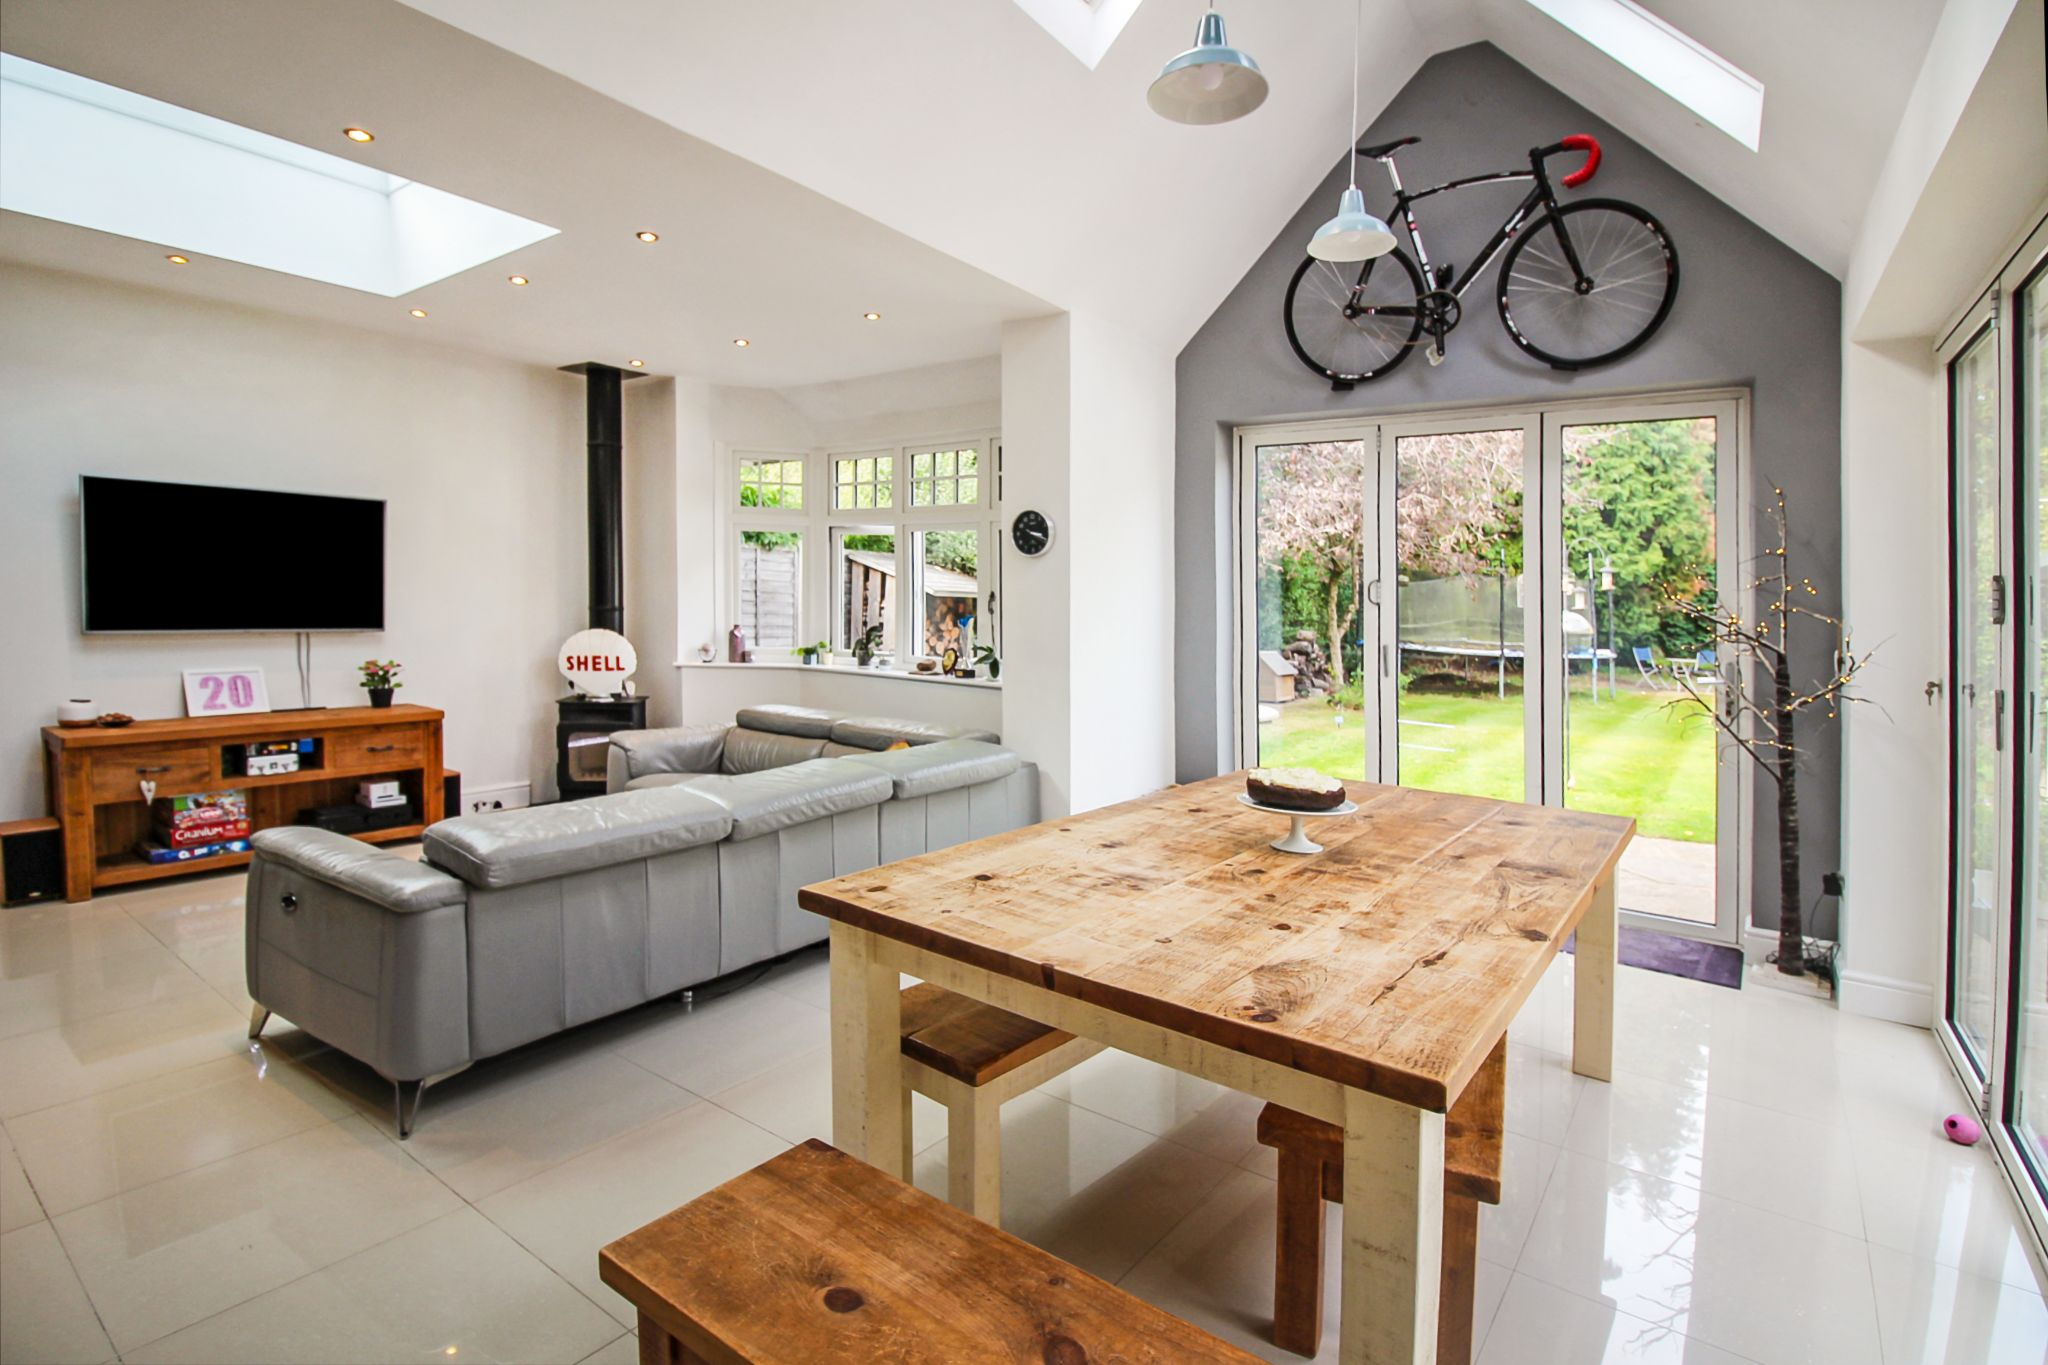 5 bedroom detached house For Sale in Solihull - Photograph 4.